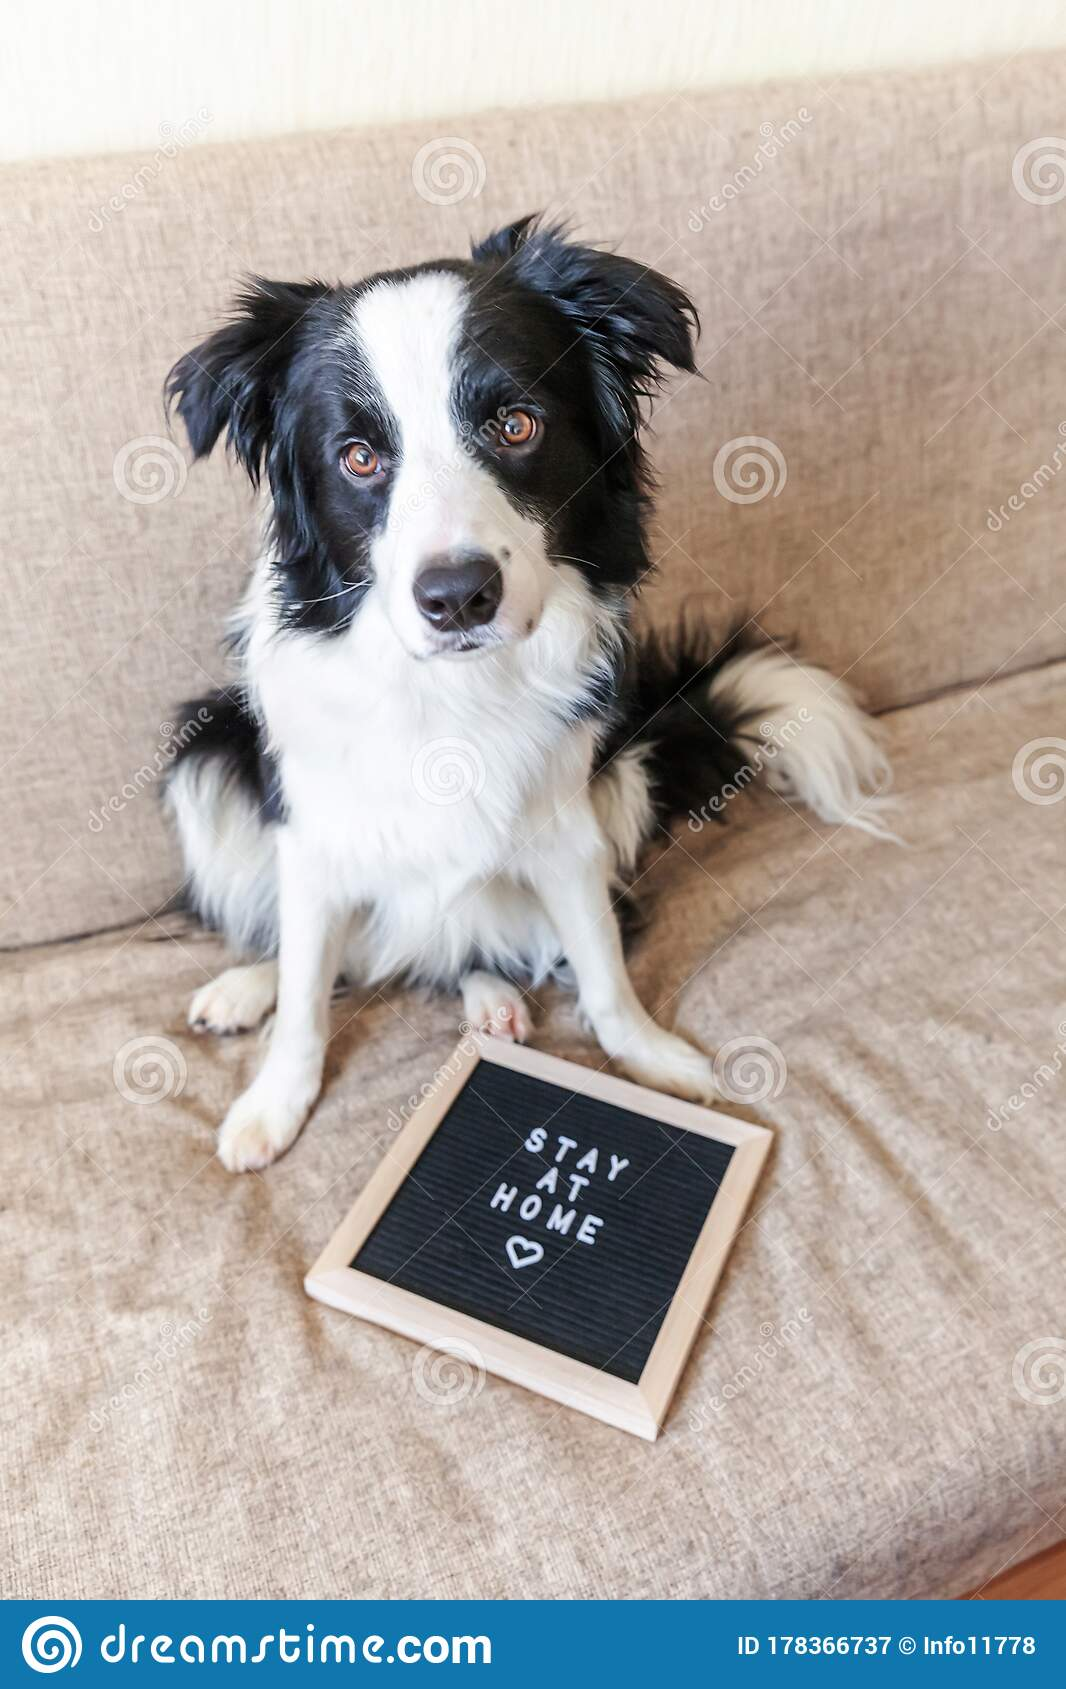 Stay Home Funny Portrait Of Cute Puppy Dog On Couch With Letter Board Inscription Stay At Home Word New Lovely Member Of Family Stock Image Image Of Domestic Indoors 178366737